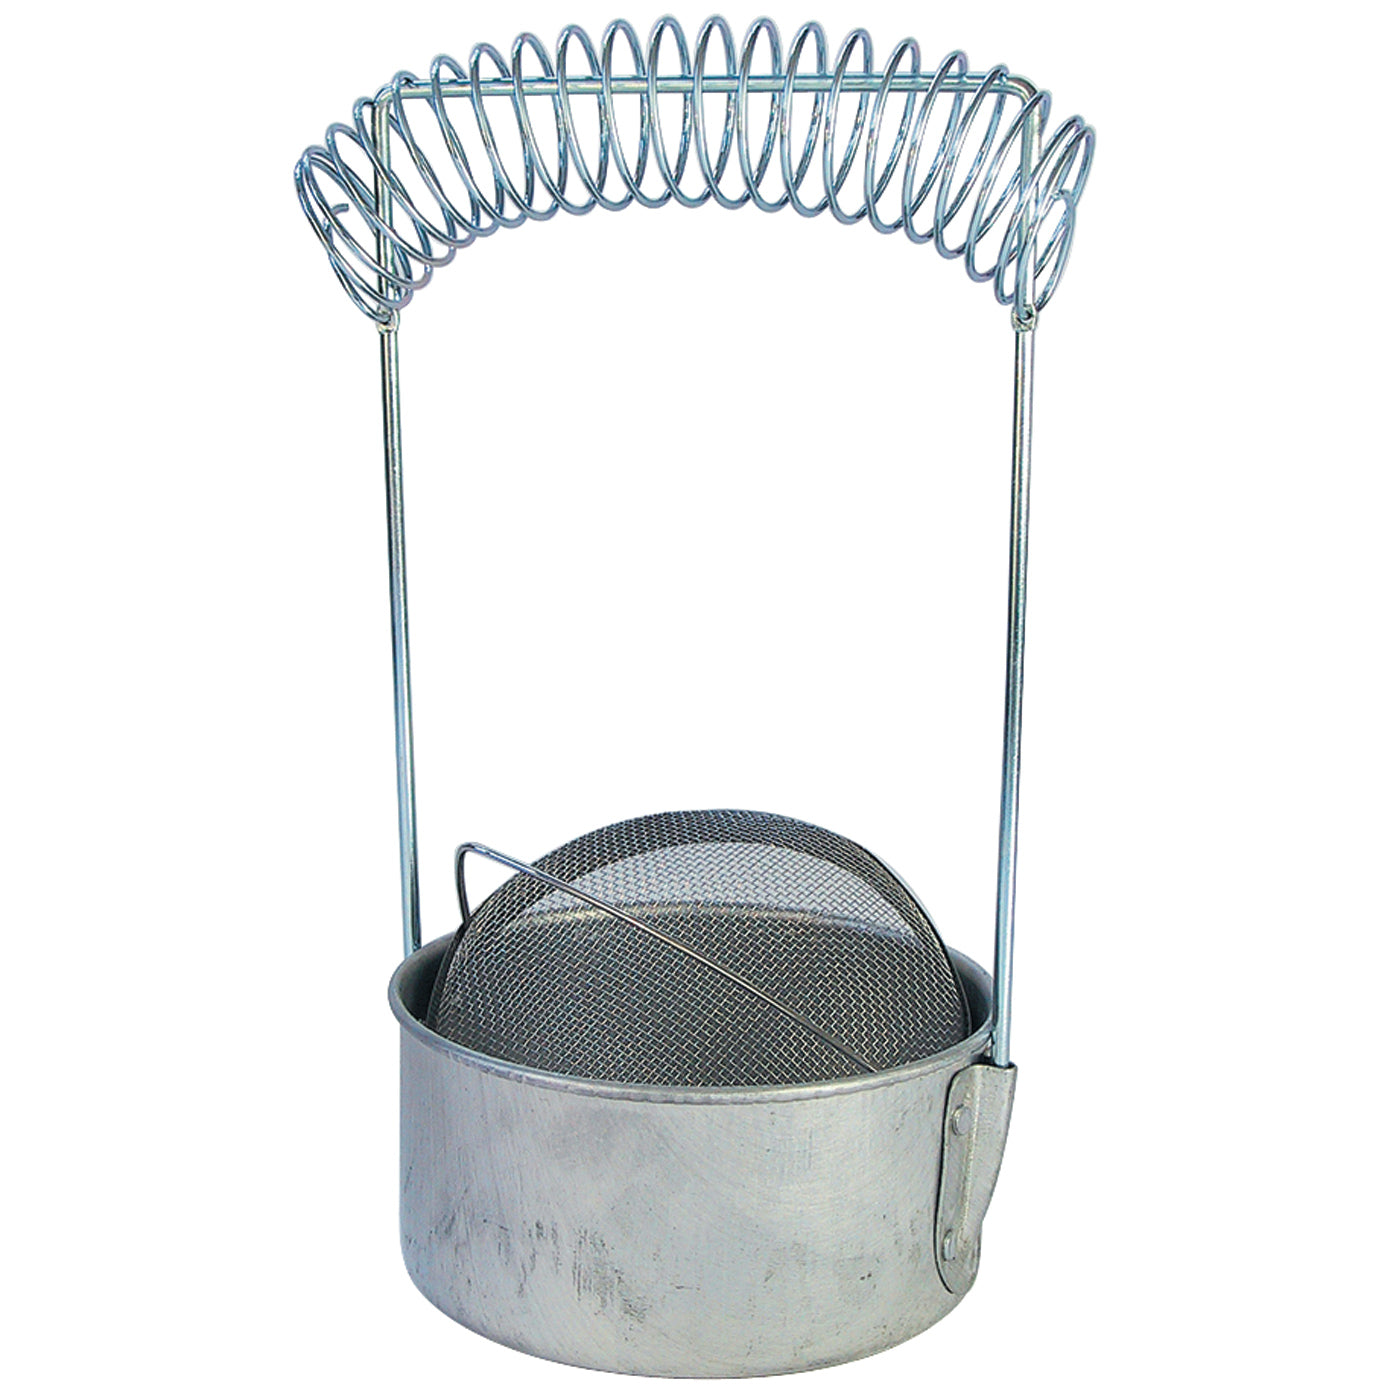 Economical aluminium brush washer with spiral brush drying rack.